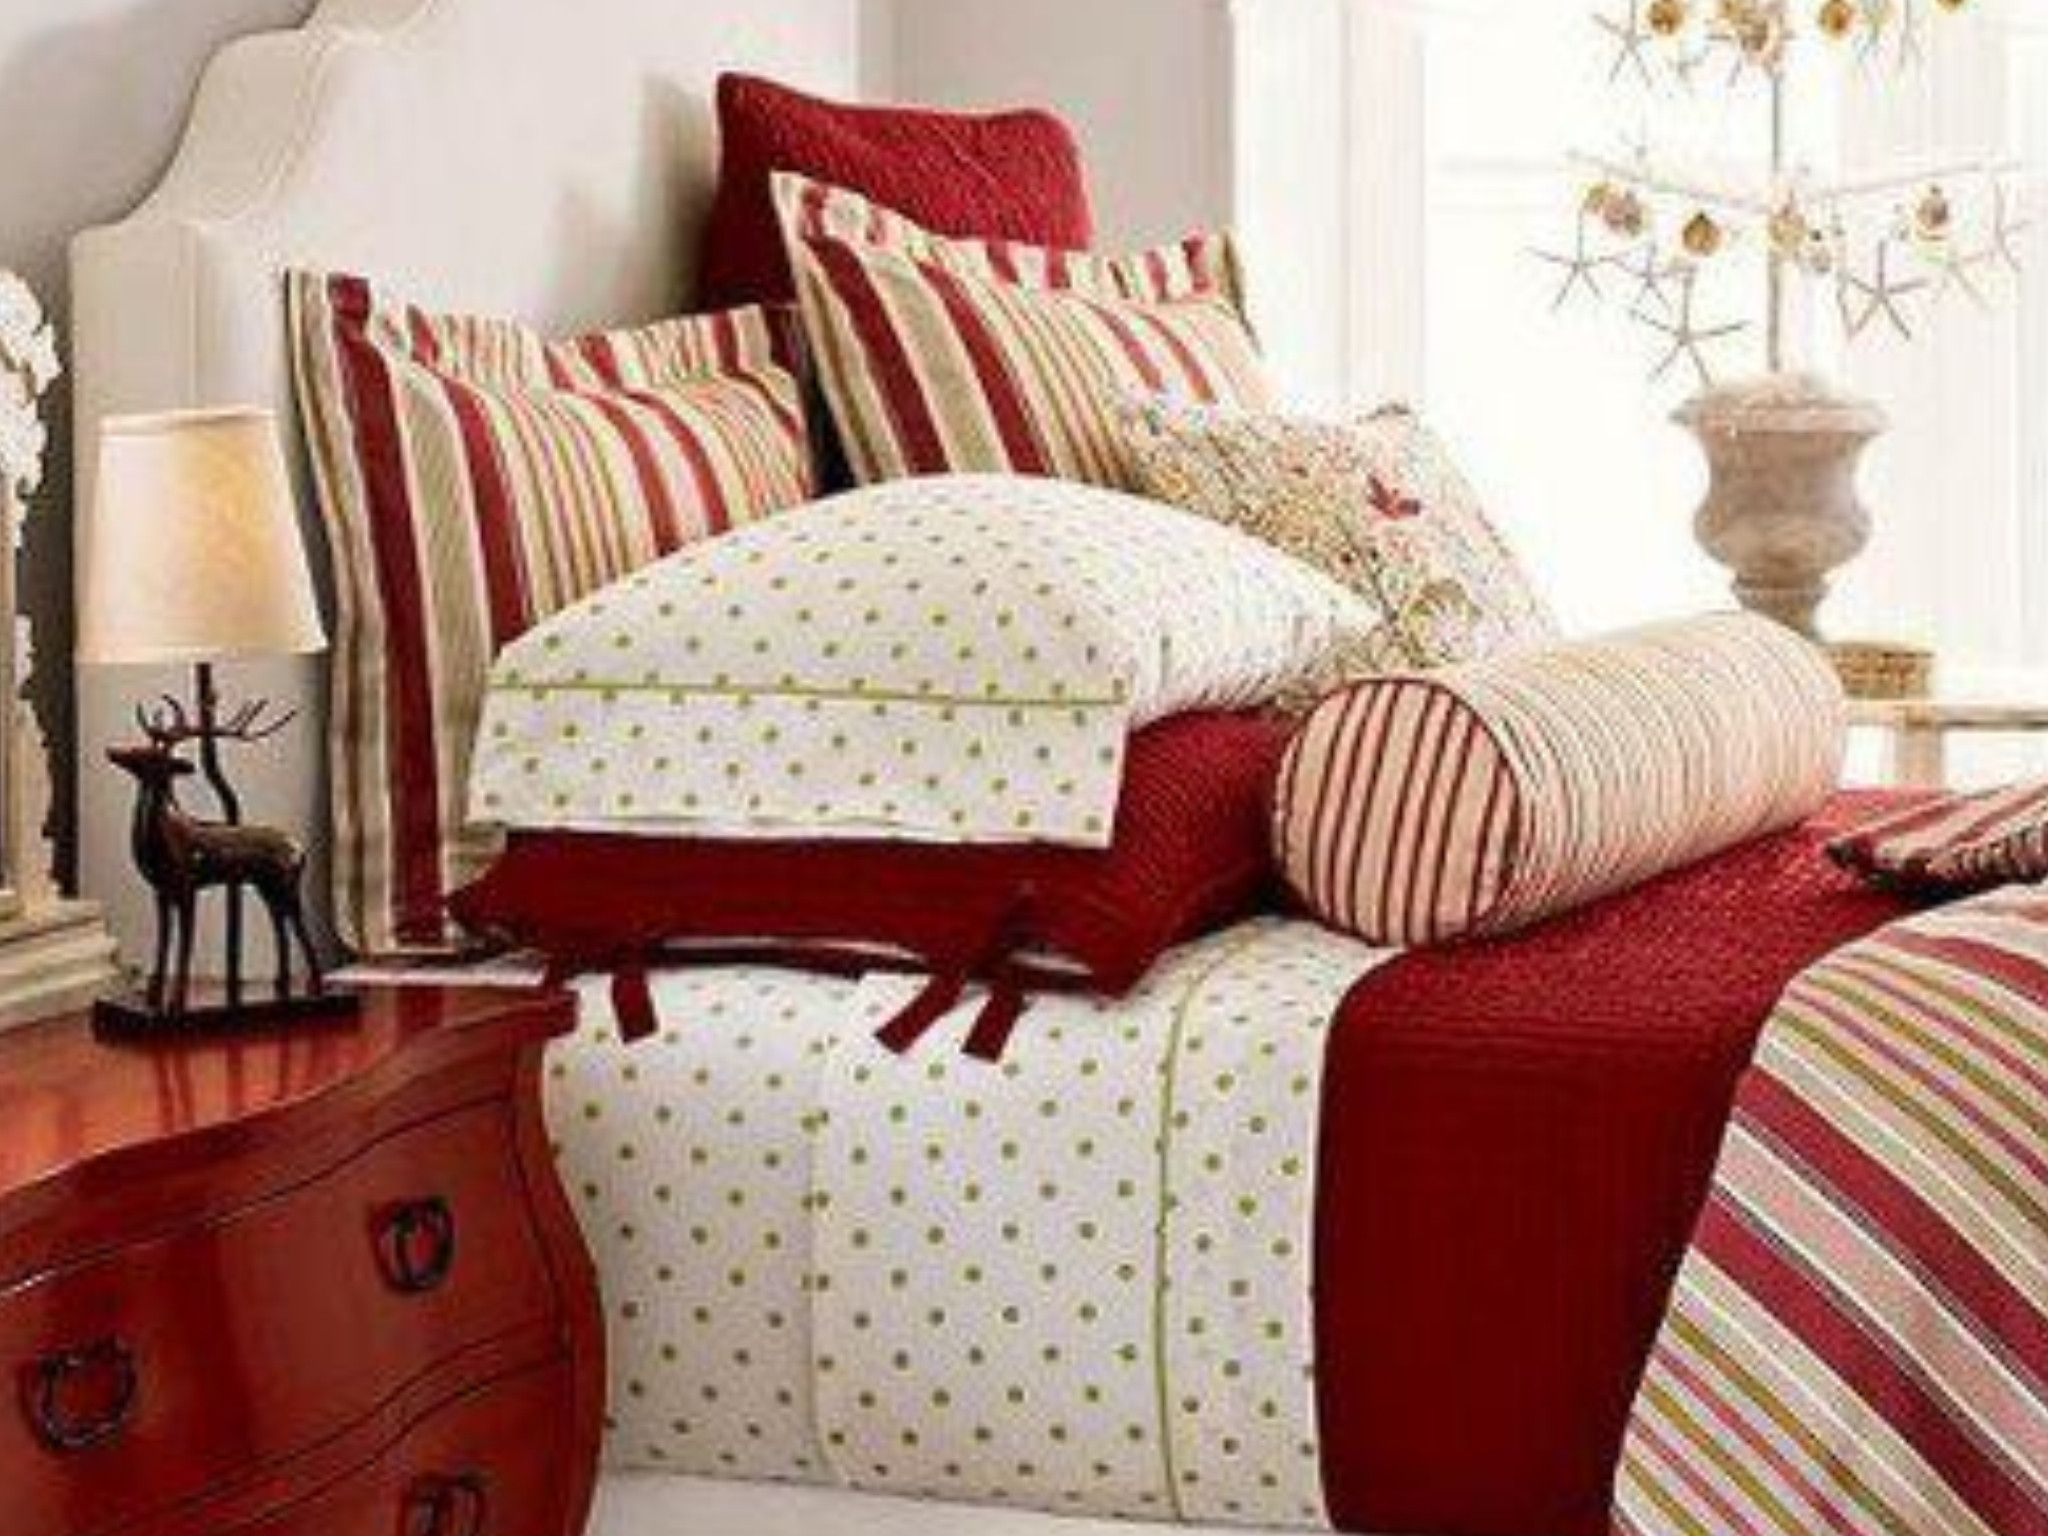 1000+ images about Christmas Bedroom Decorating Ideas on Pinterest ...